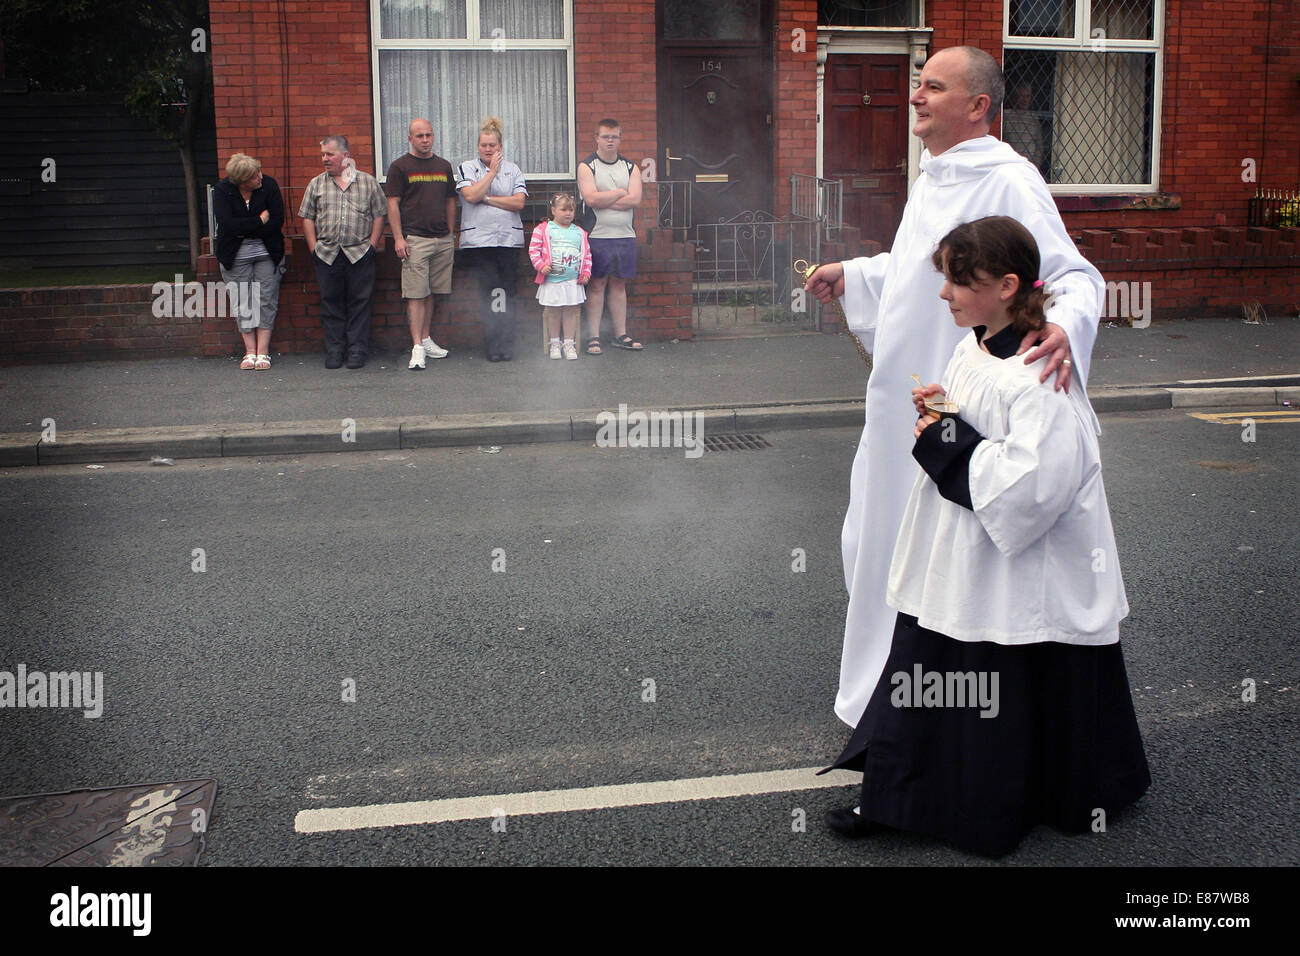 The procession from St Margaret's Church to the Hollinwood and Limeside festival. Picture: Chris Bull - Stock Image